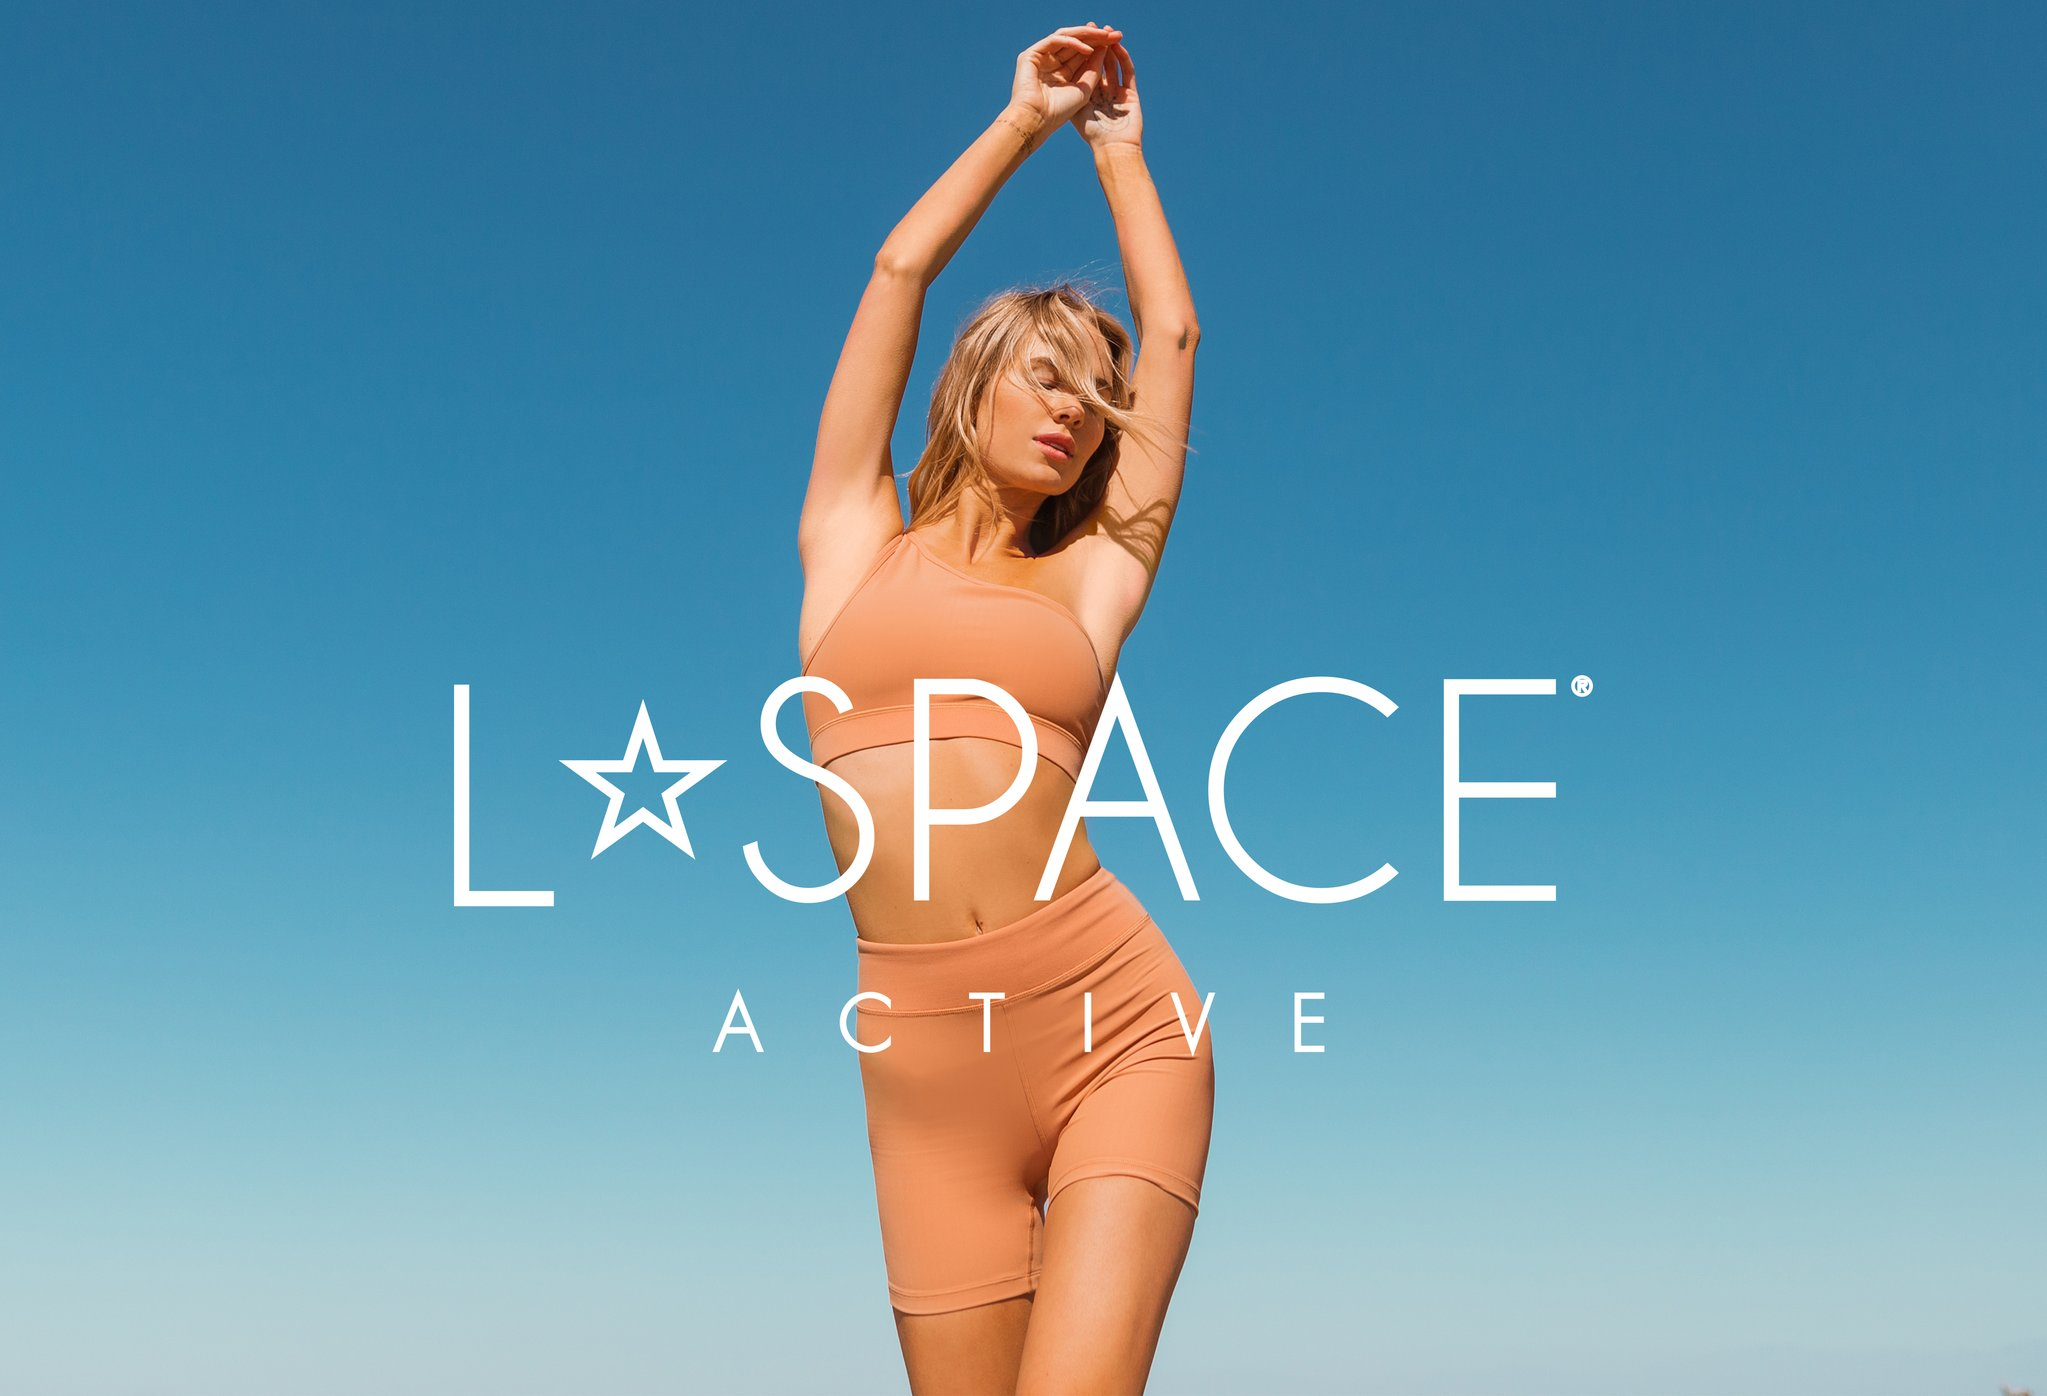 model wearing lspace active